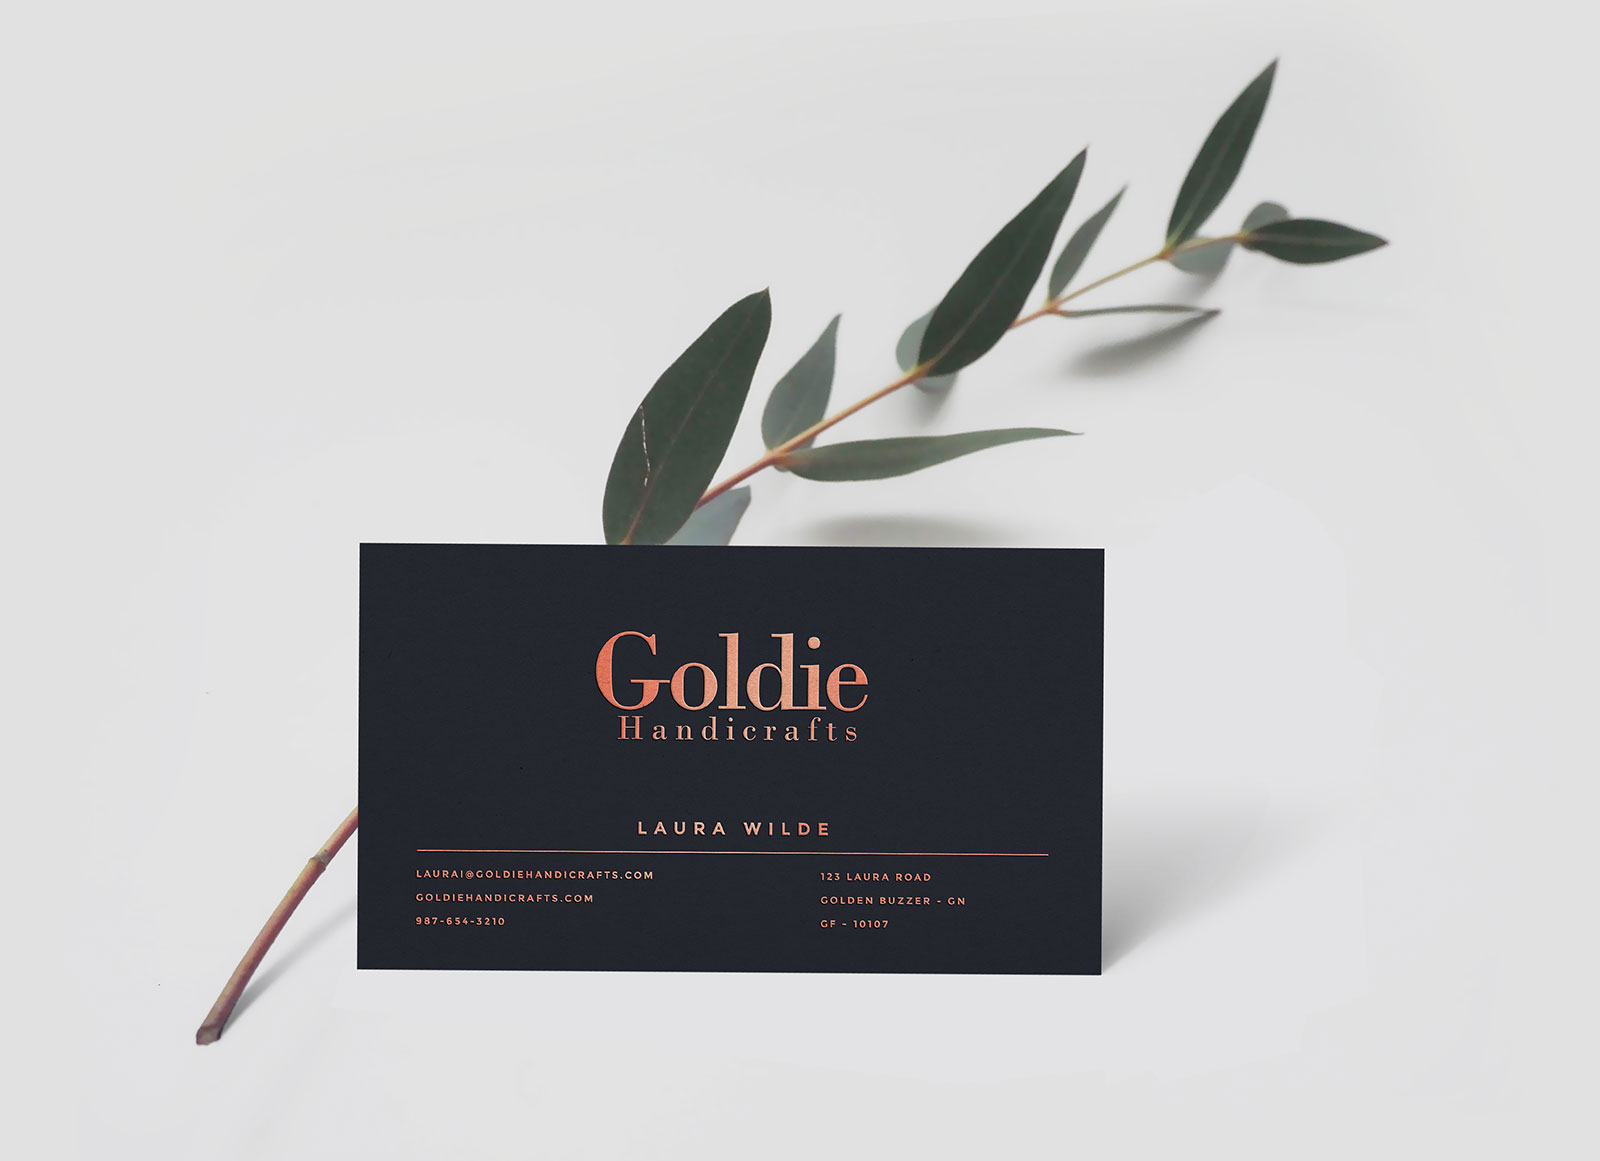 Free realistic black business card mockup psd good mockups free realistic black business card mockup psd reheart Image collections